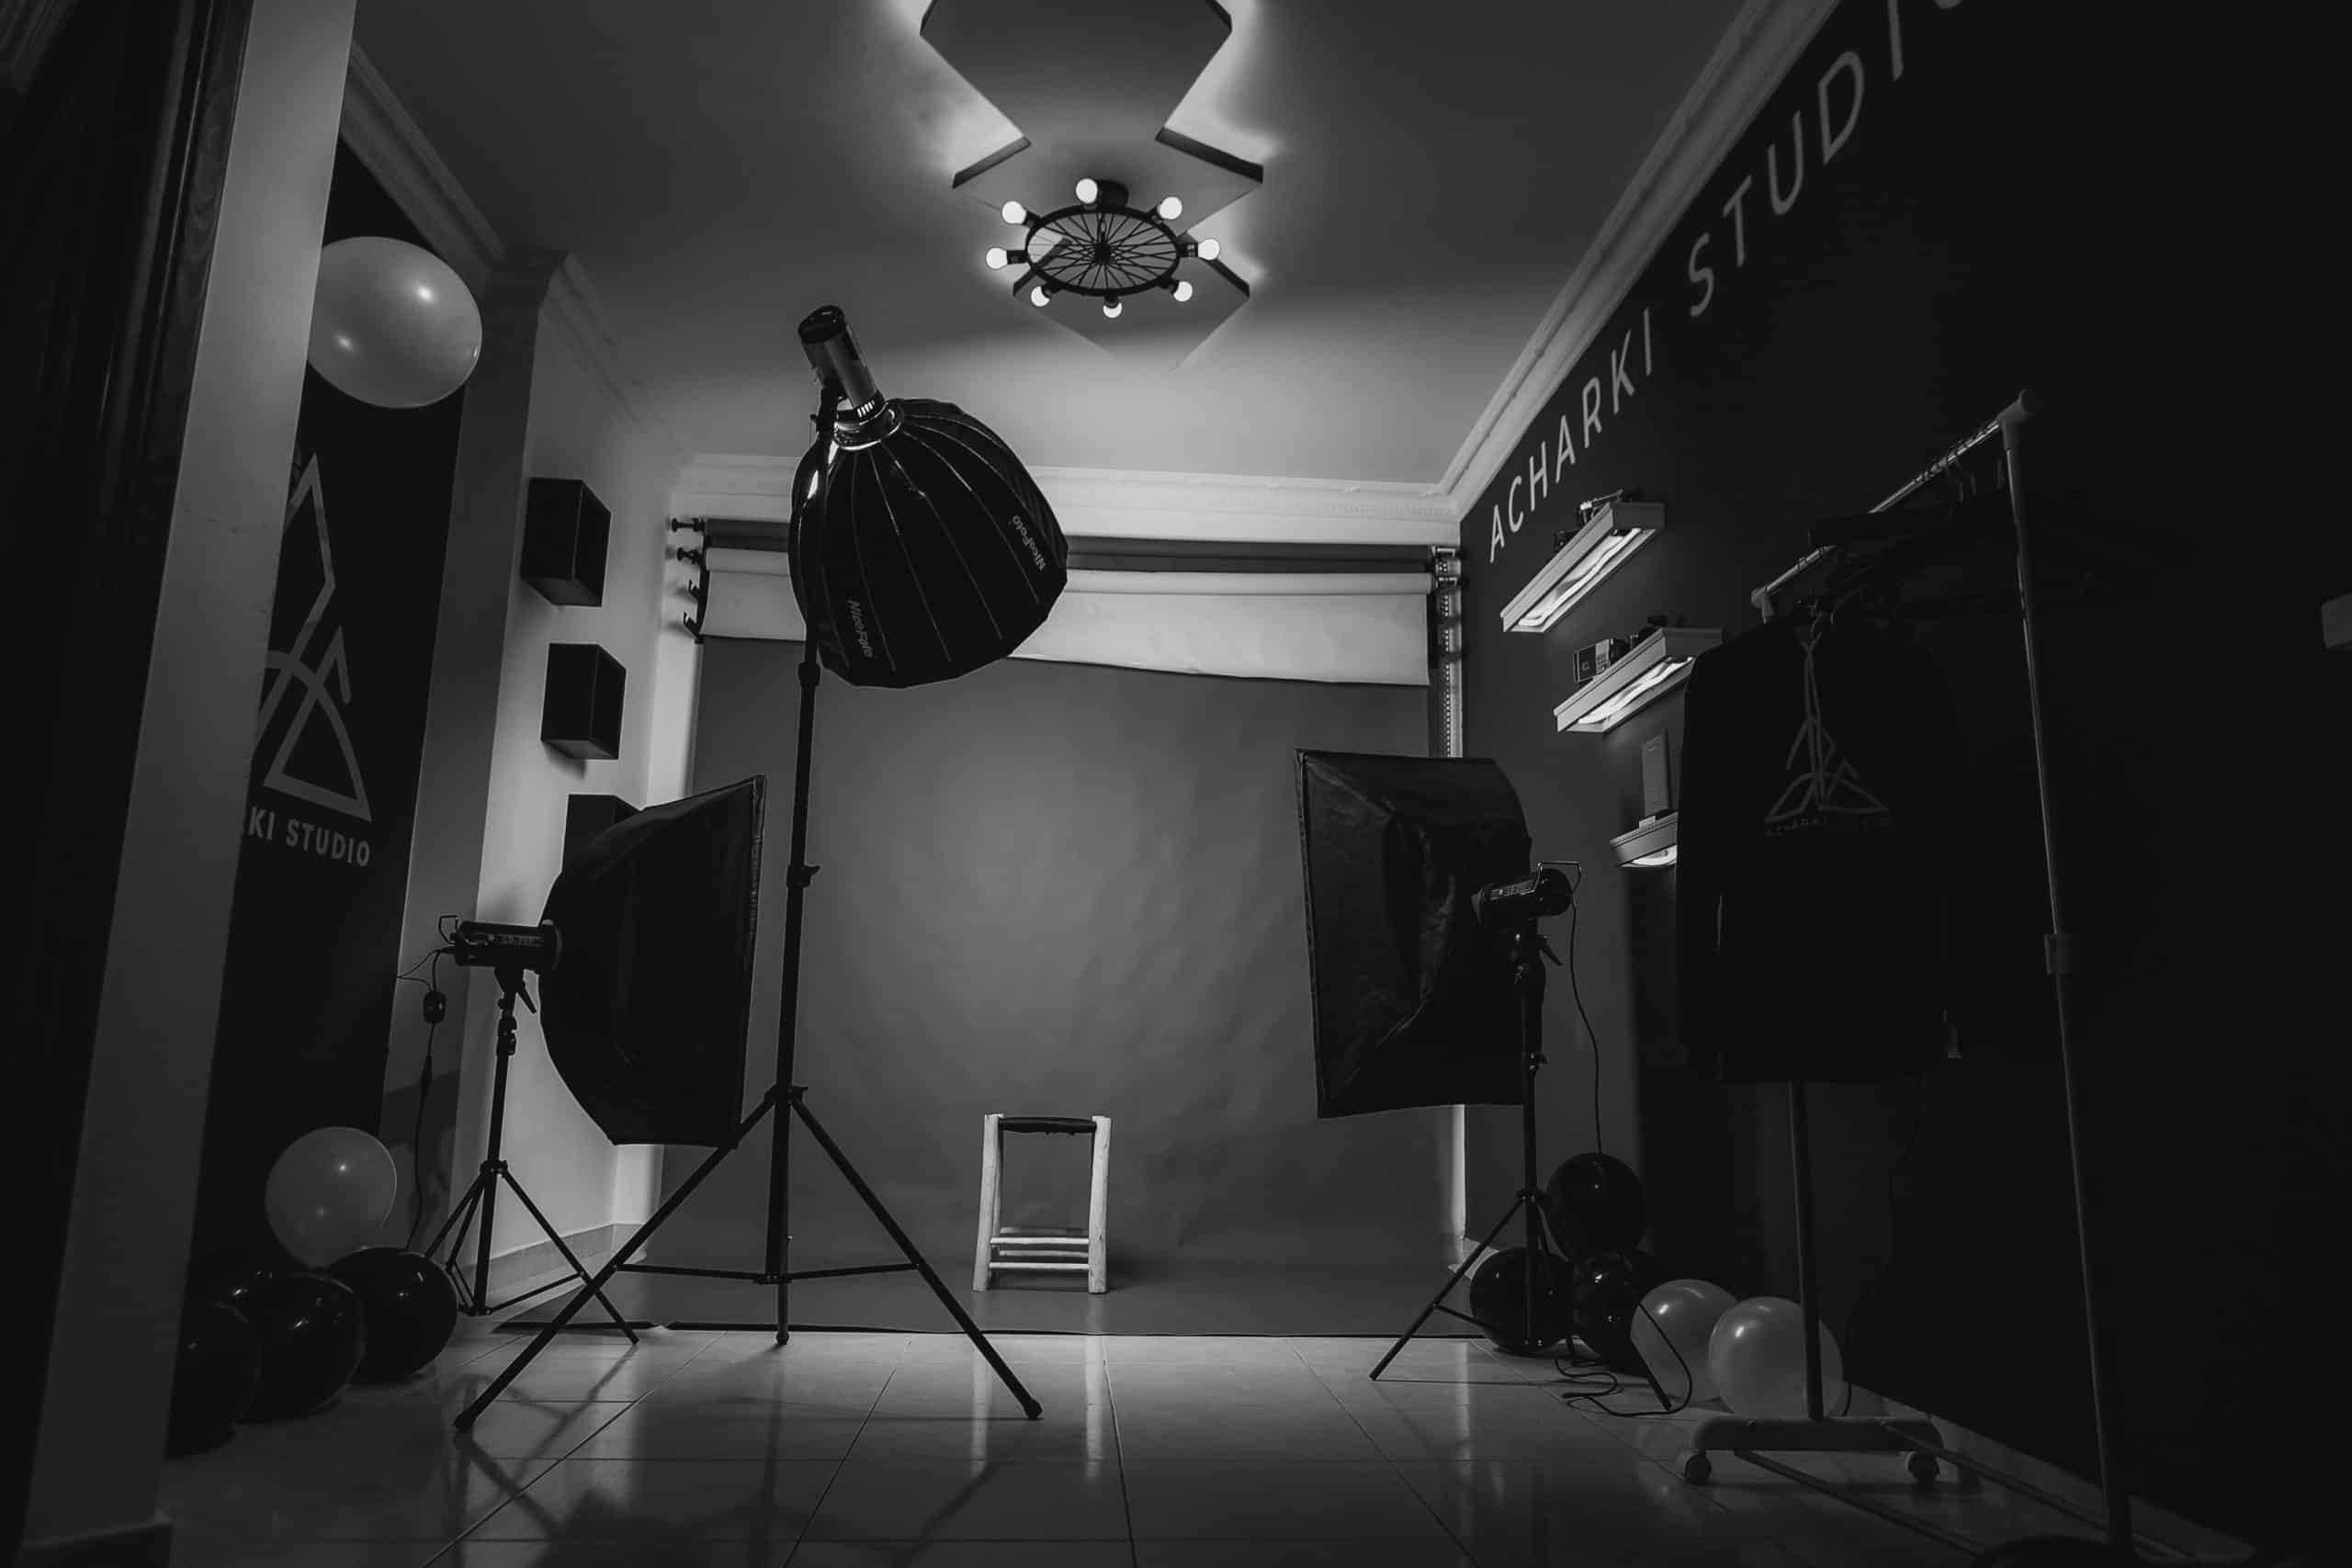 Best Photography Lighting course tutorial class certification training online